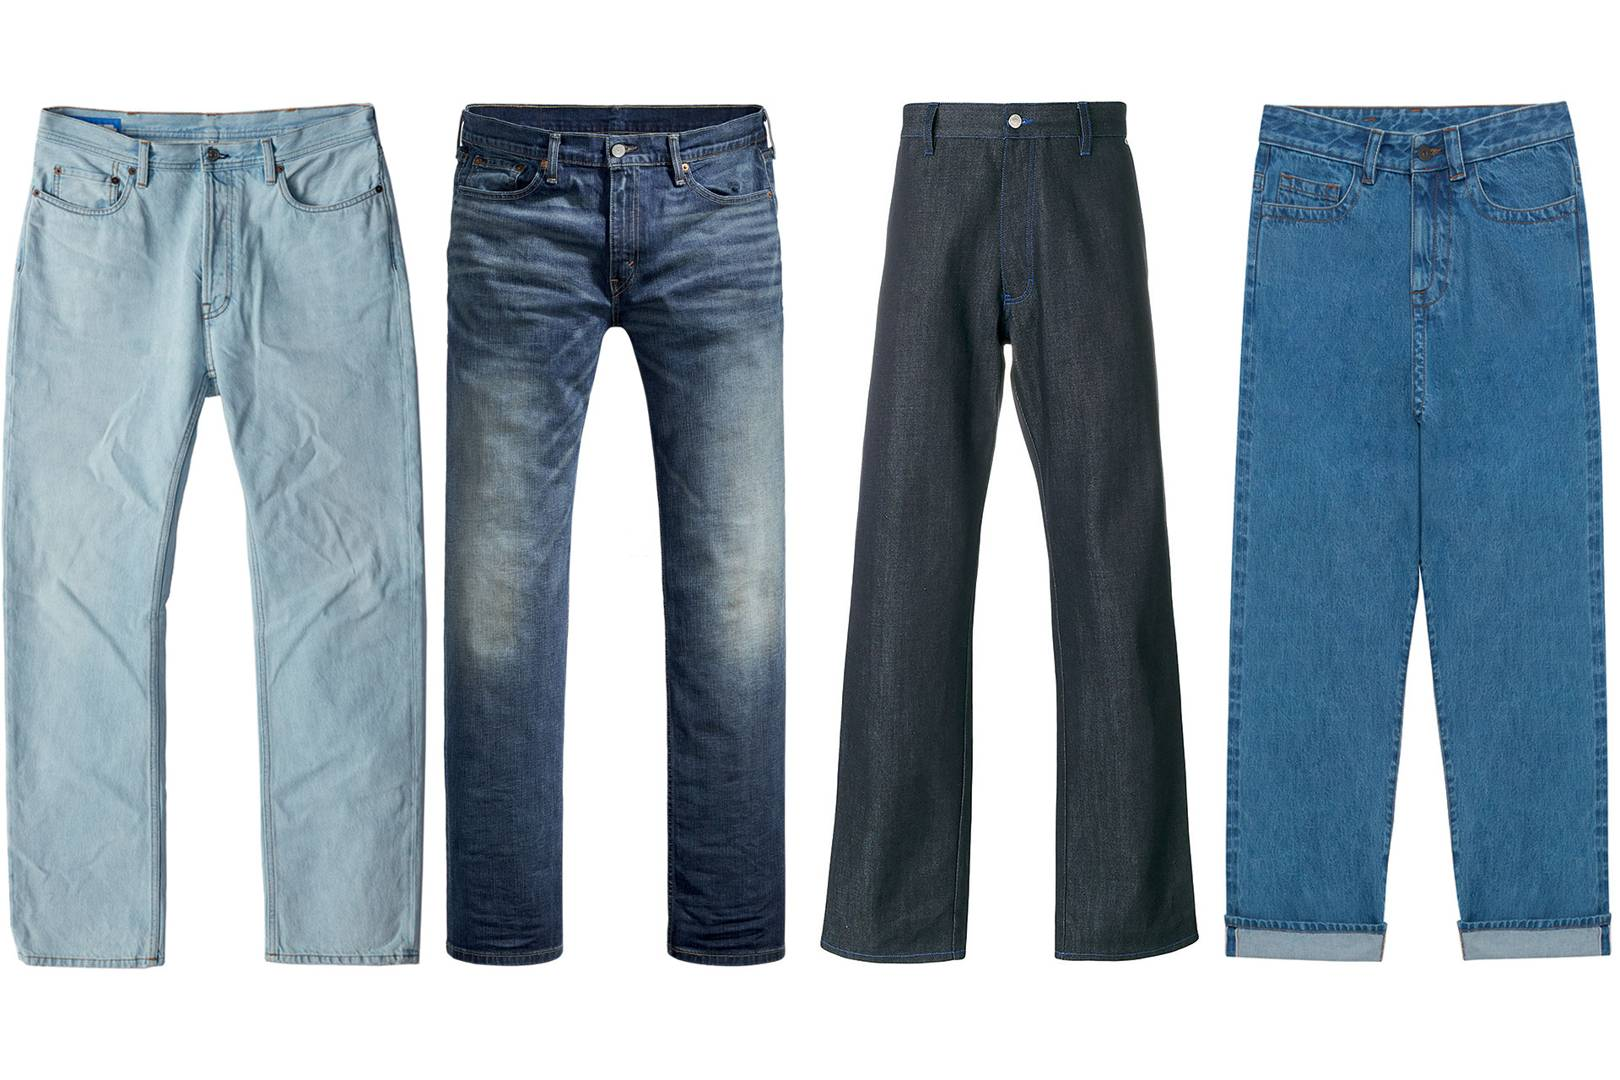 beb2c005 Skinny jeans are for chumps, it's time to go wide | British GQ